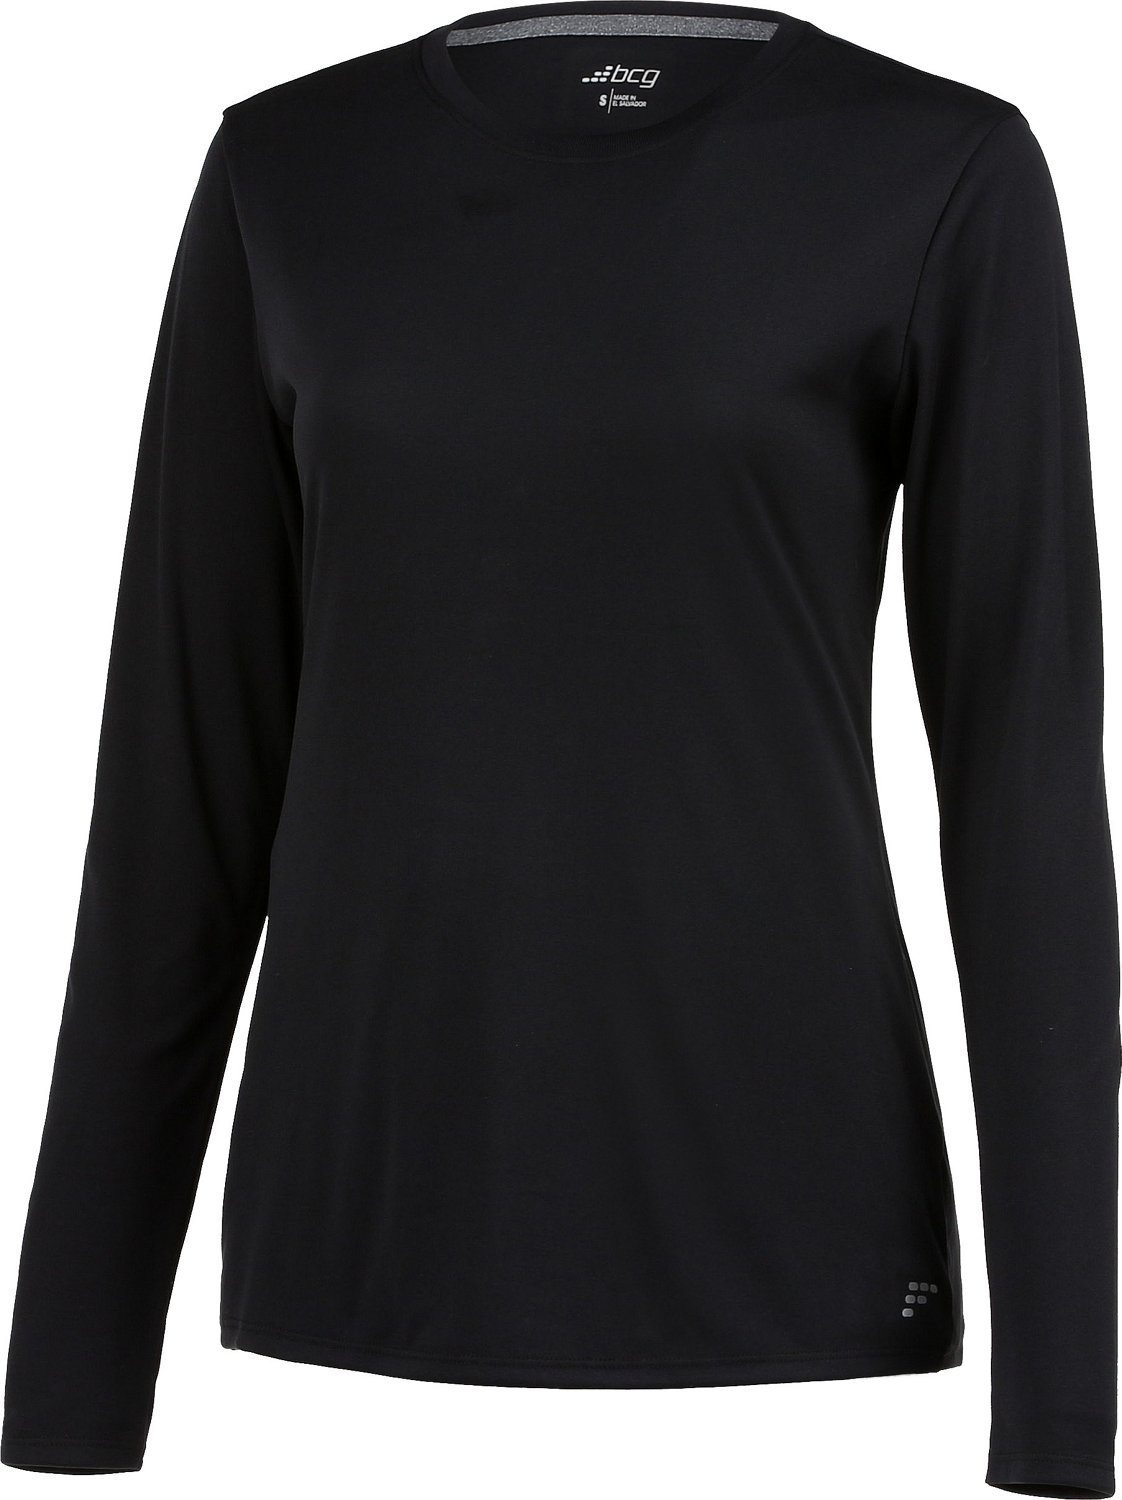 BCG Women's Turbo Long-Sleeve Shirt - view number 1